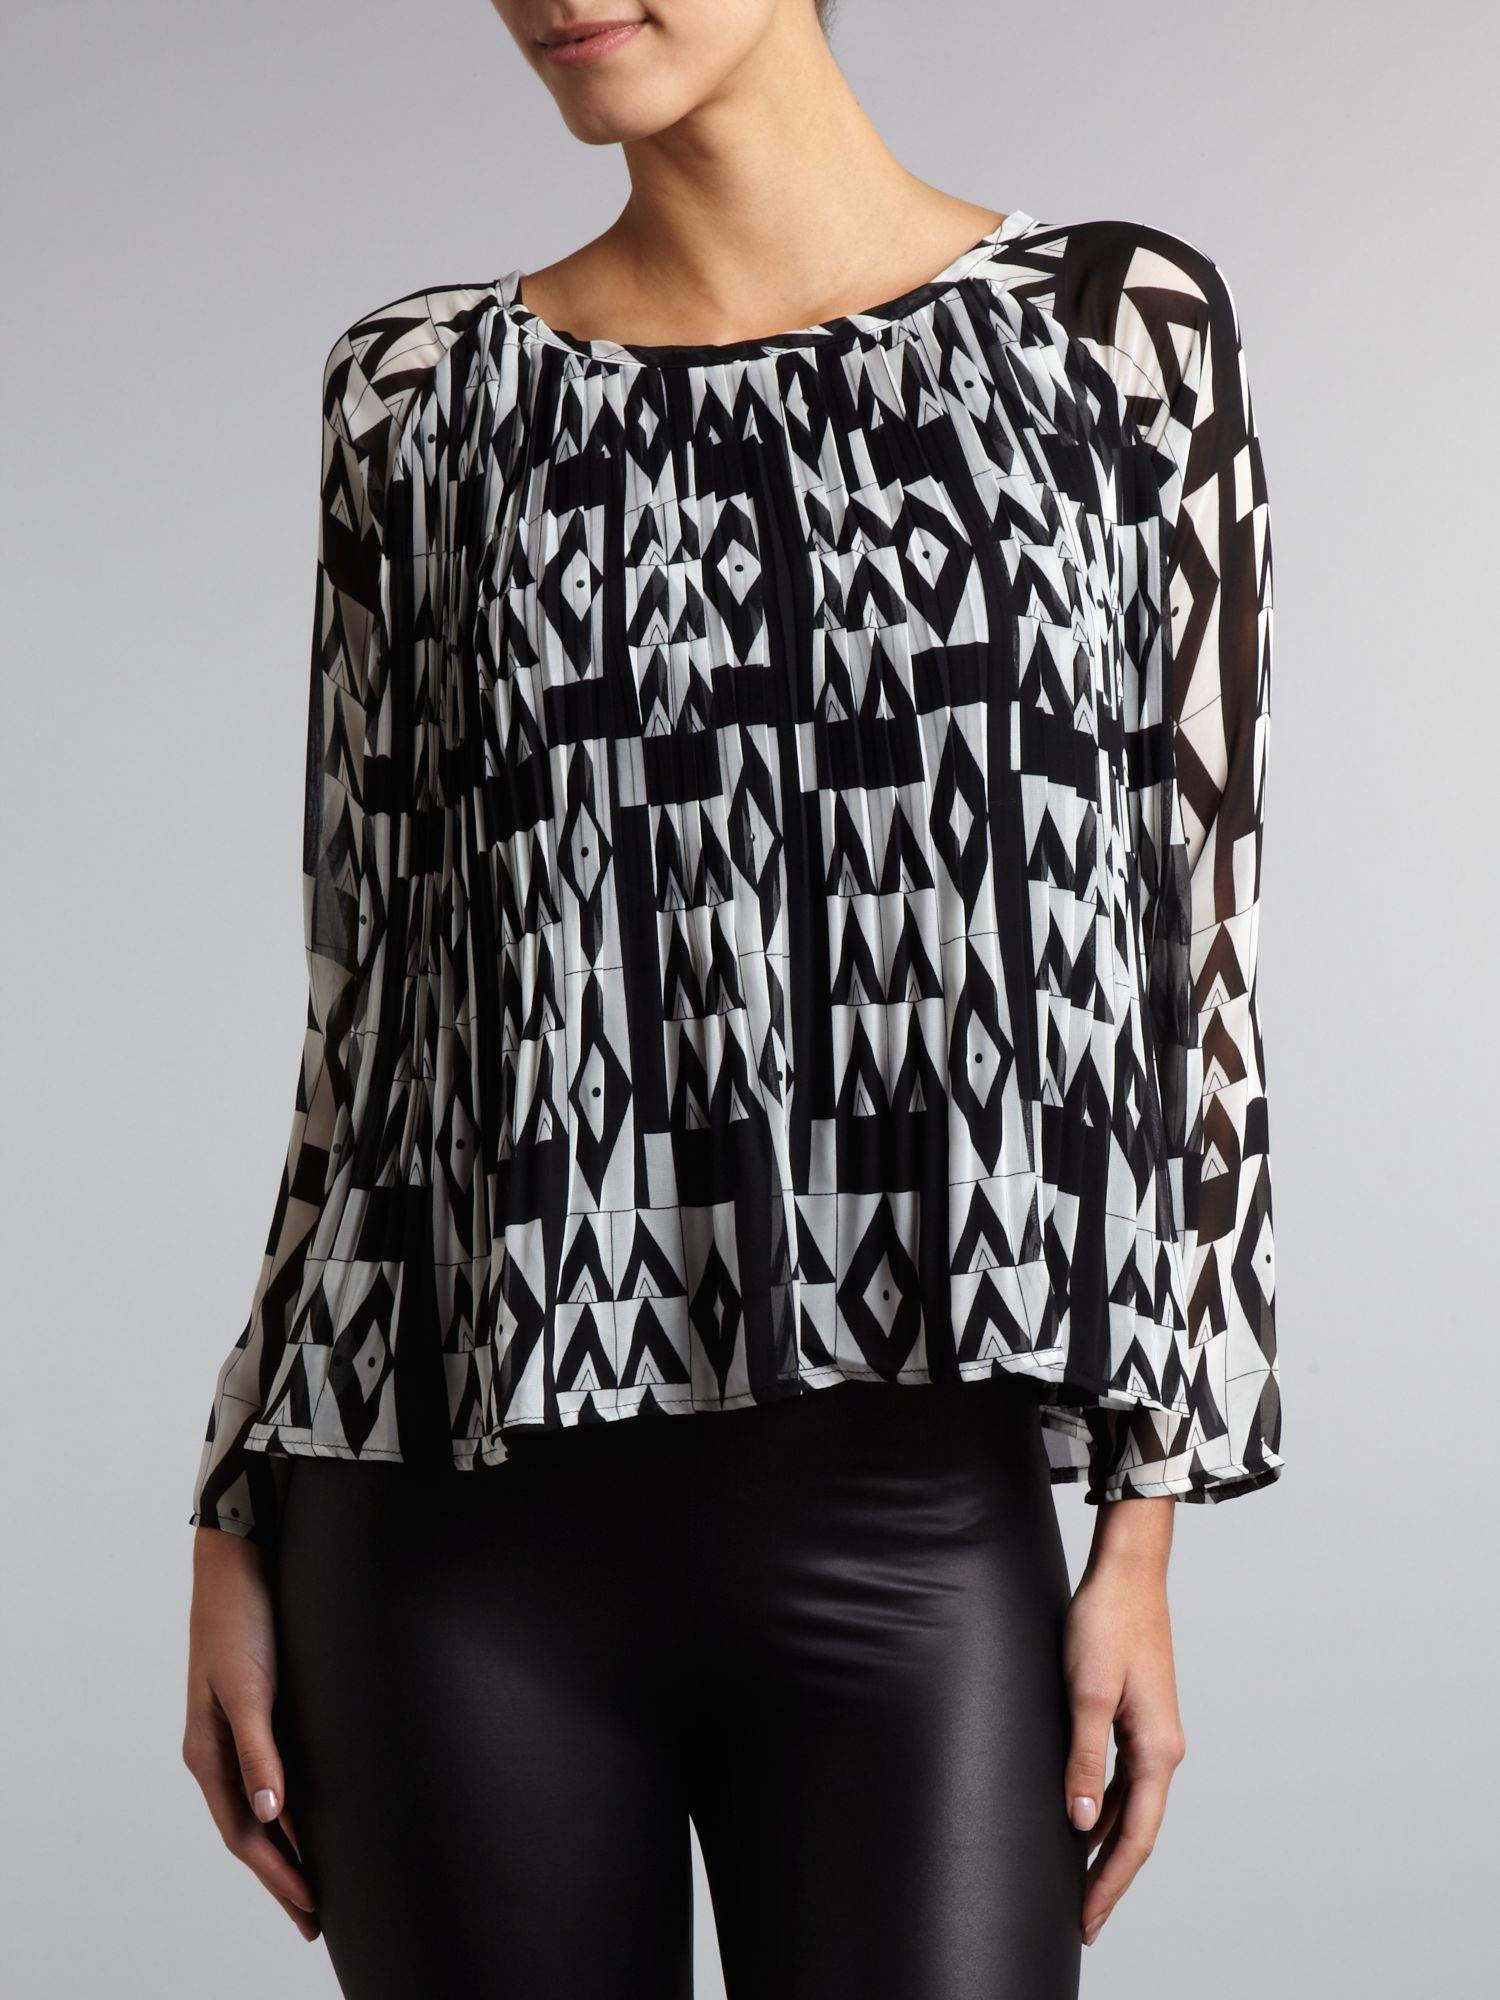 Monochrome geometric print pleated blouse